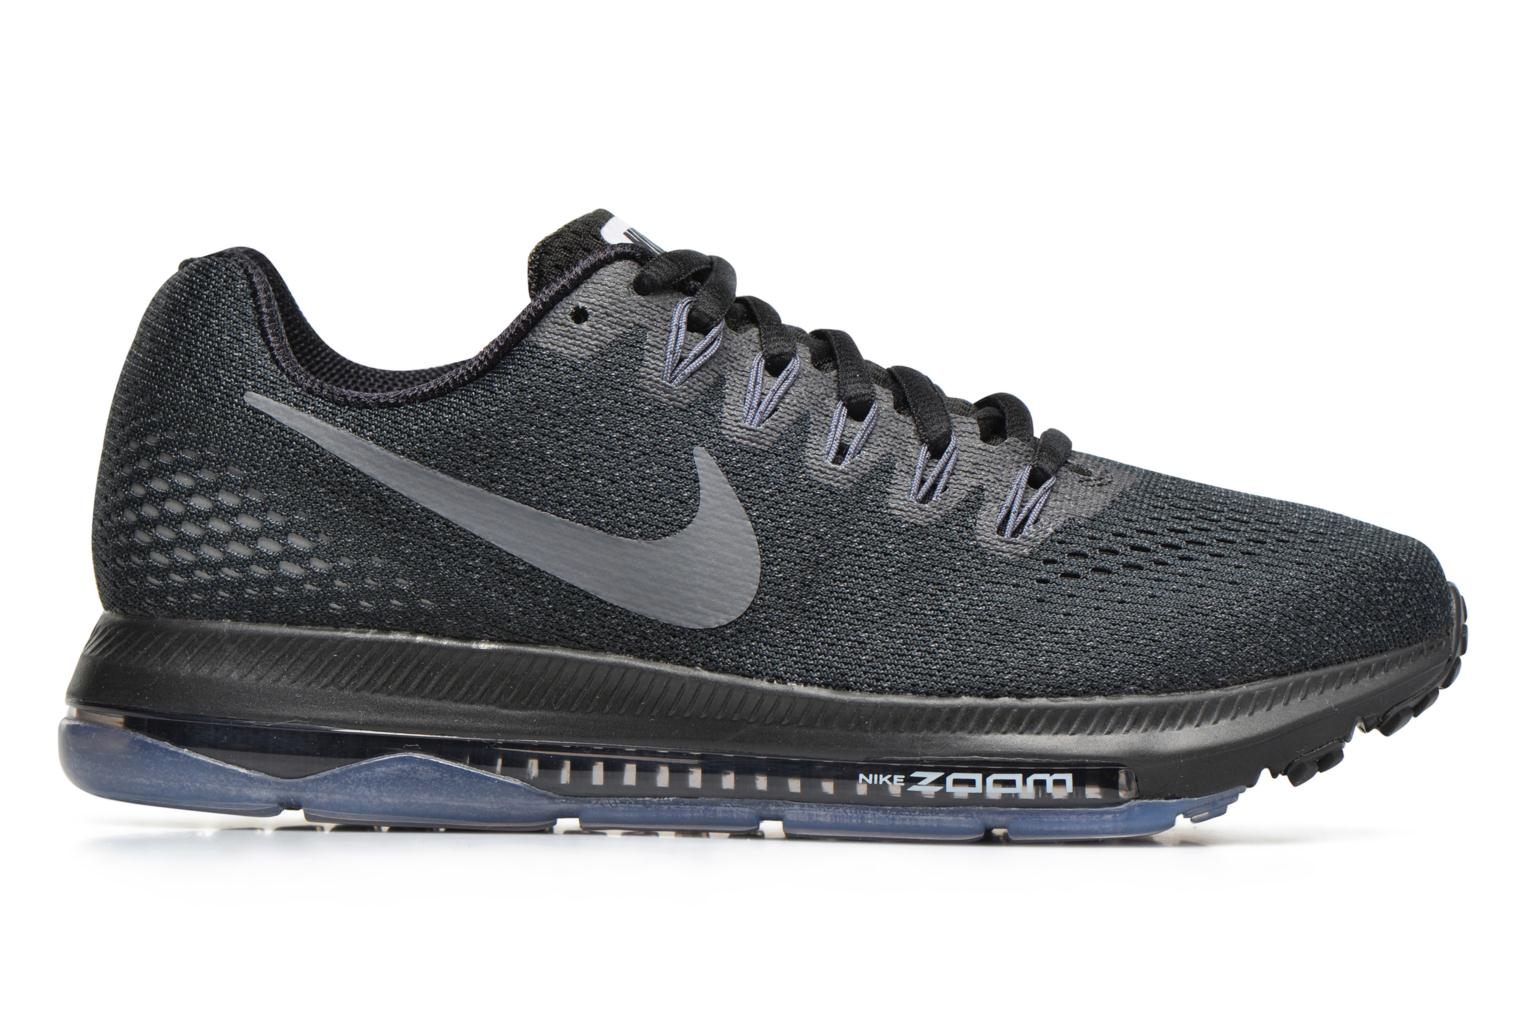 Wmns Nike Zoom All Out Low Black/Dark Grey-Anthracite-White